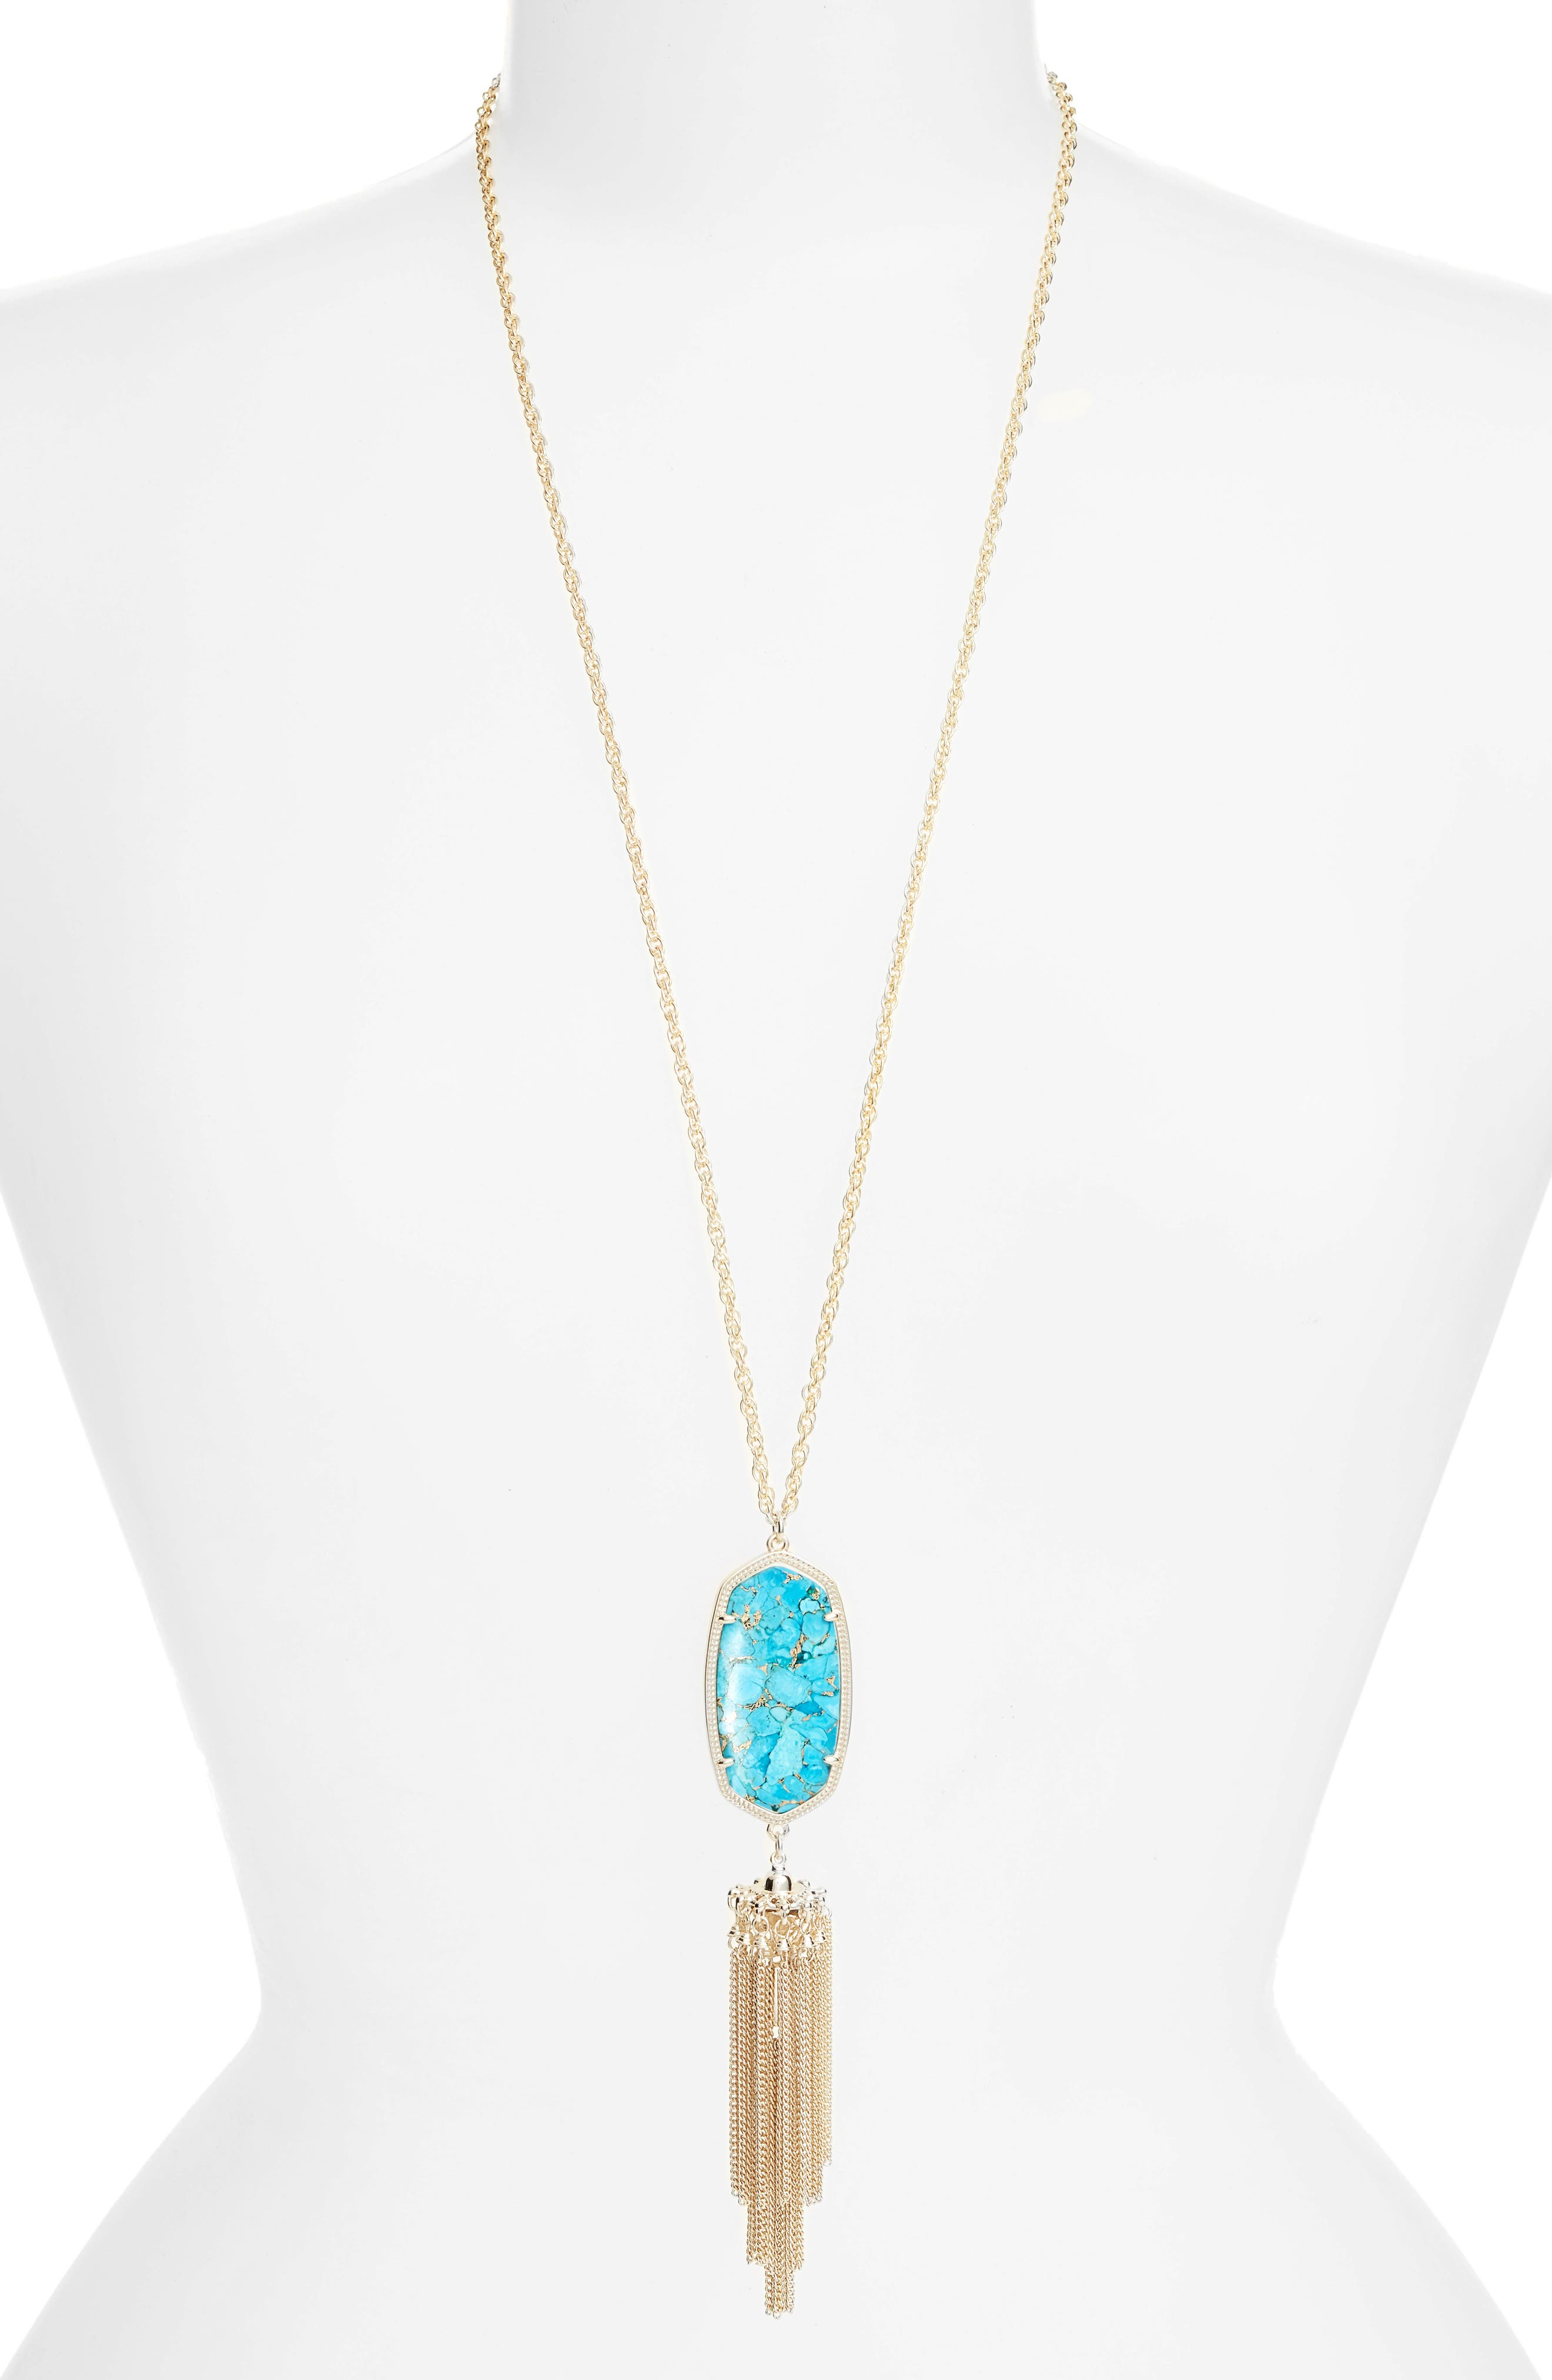 Rayne Stone Tassel Pendant Necklace,                             Main thumbnail 1, color,                             Bronze Veined Turquoise/ Gold